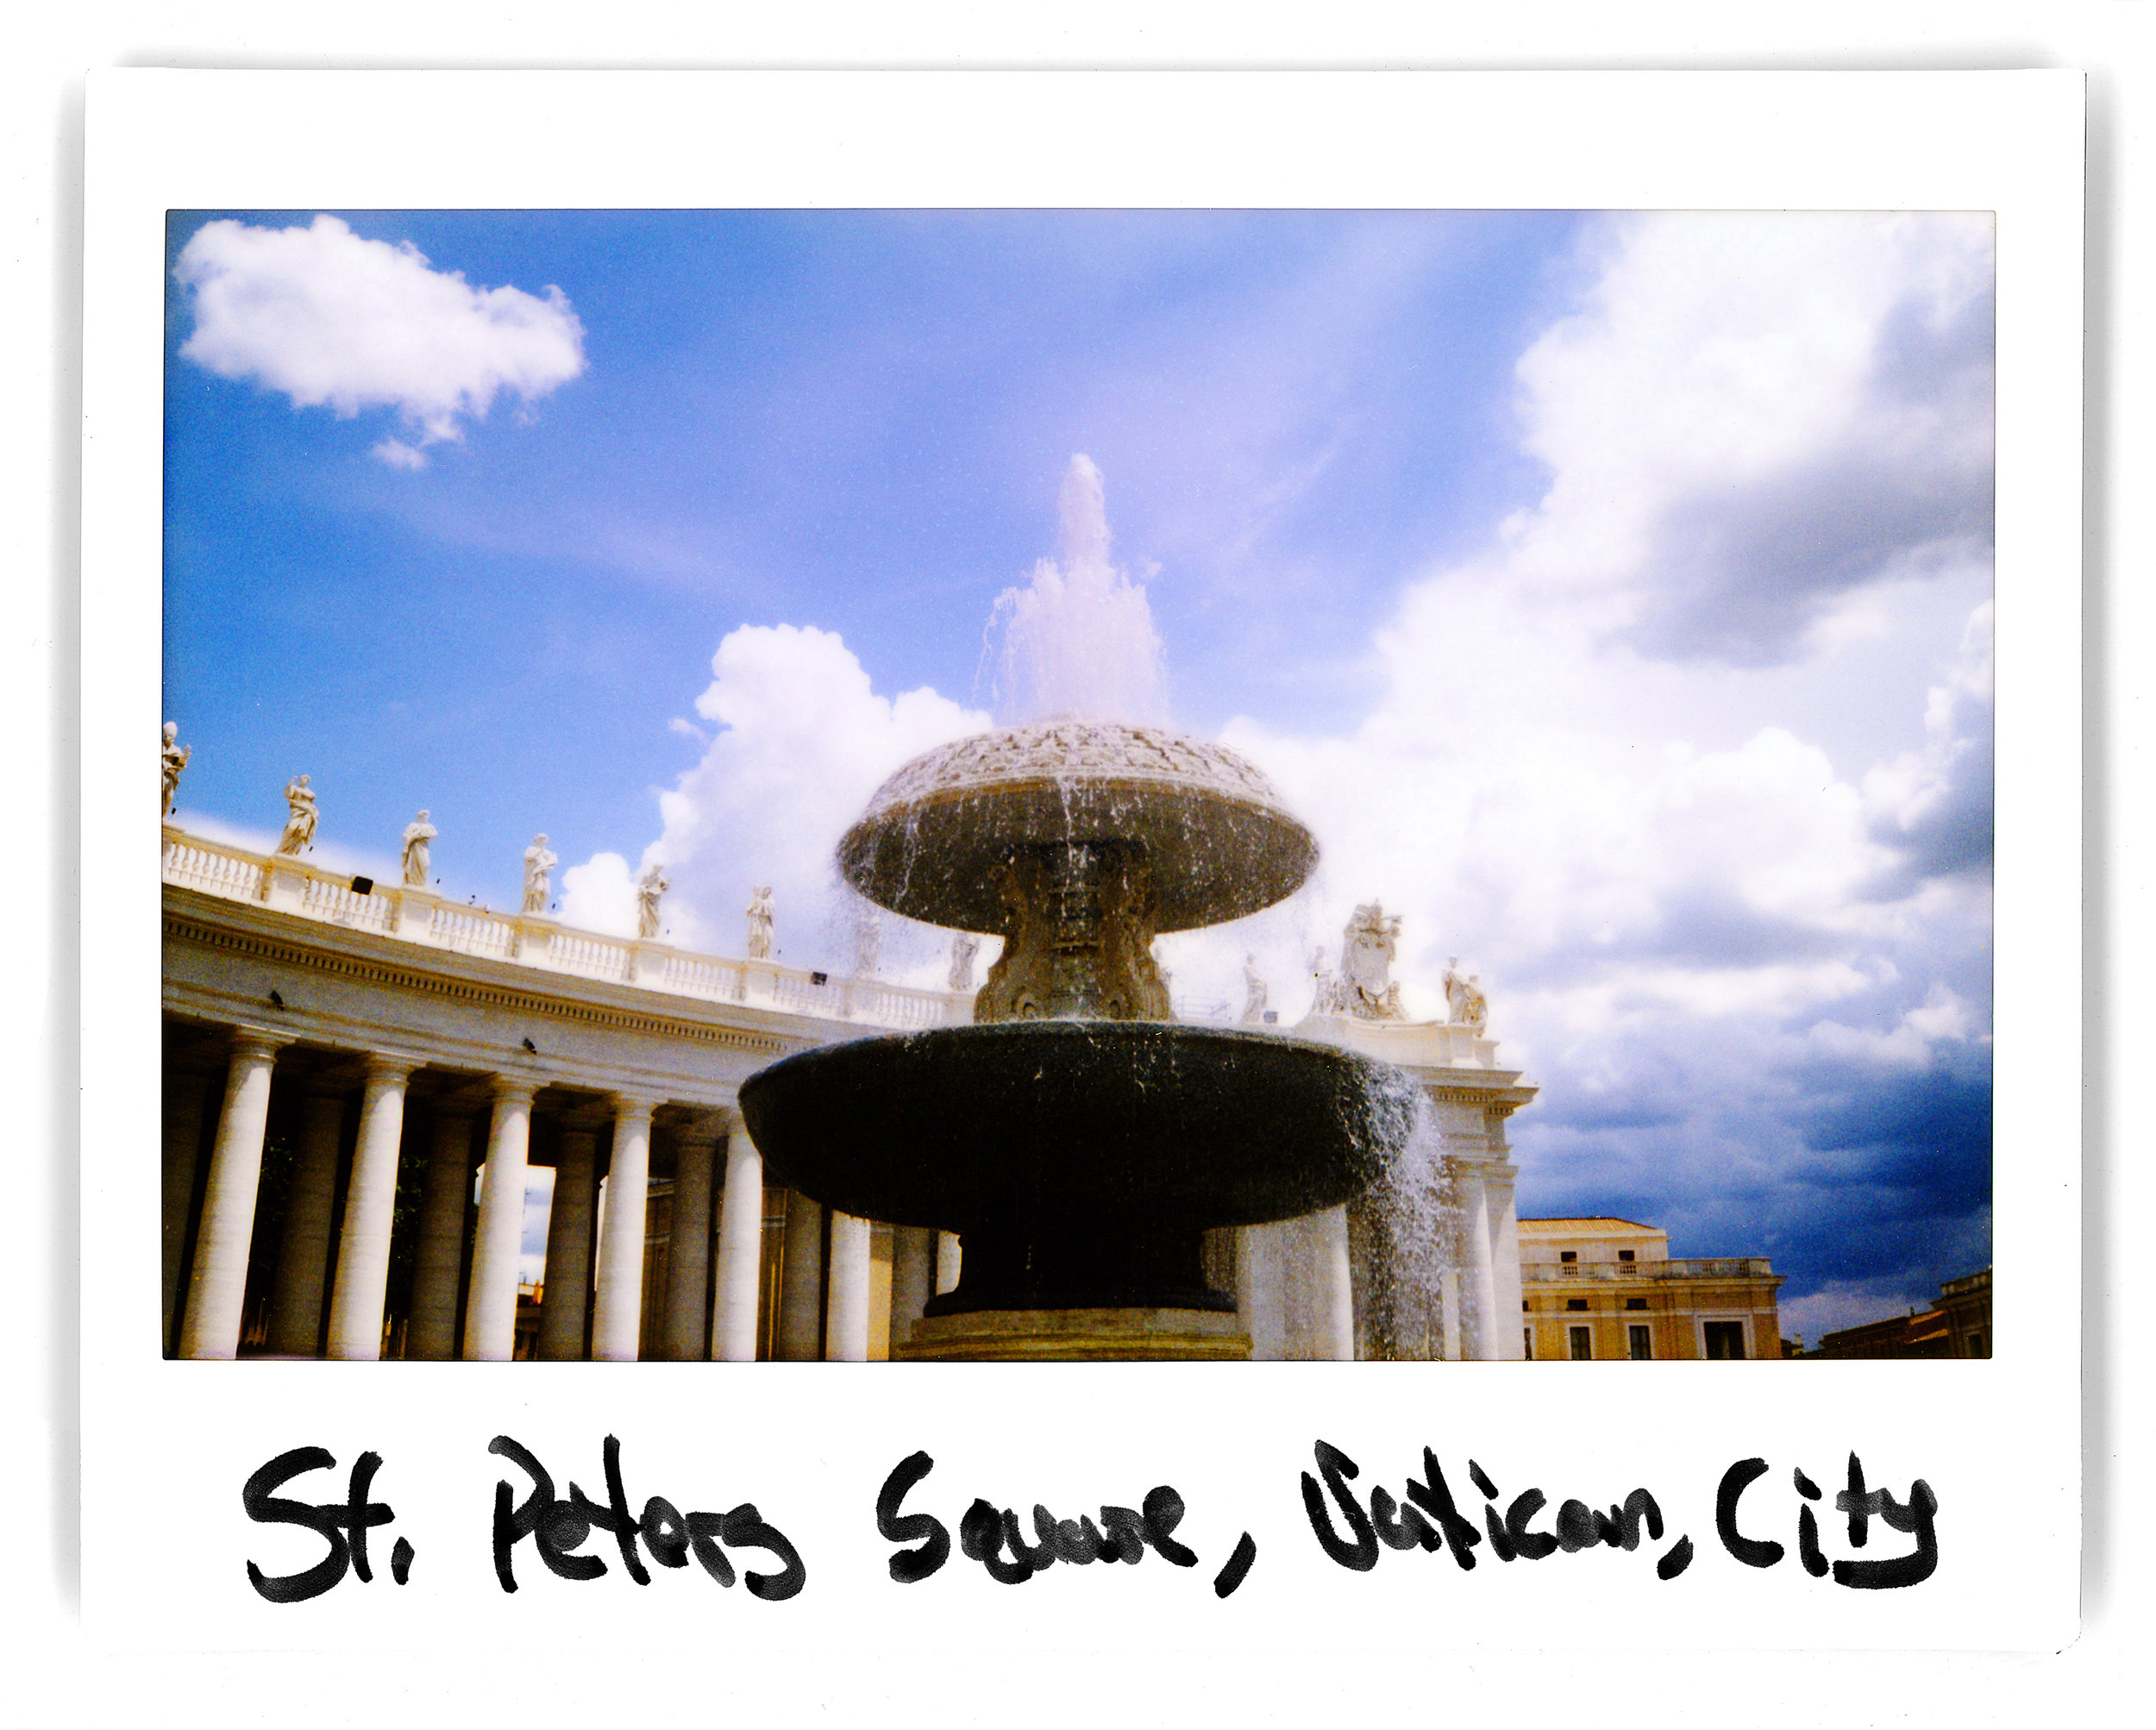 68_St_Peters_Square copy.jpg